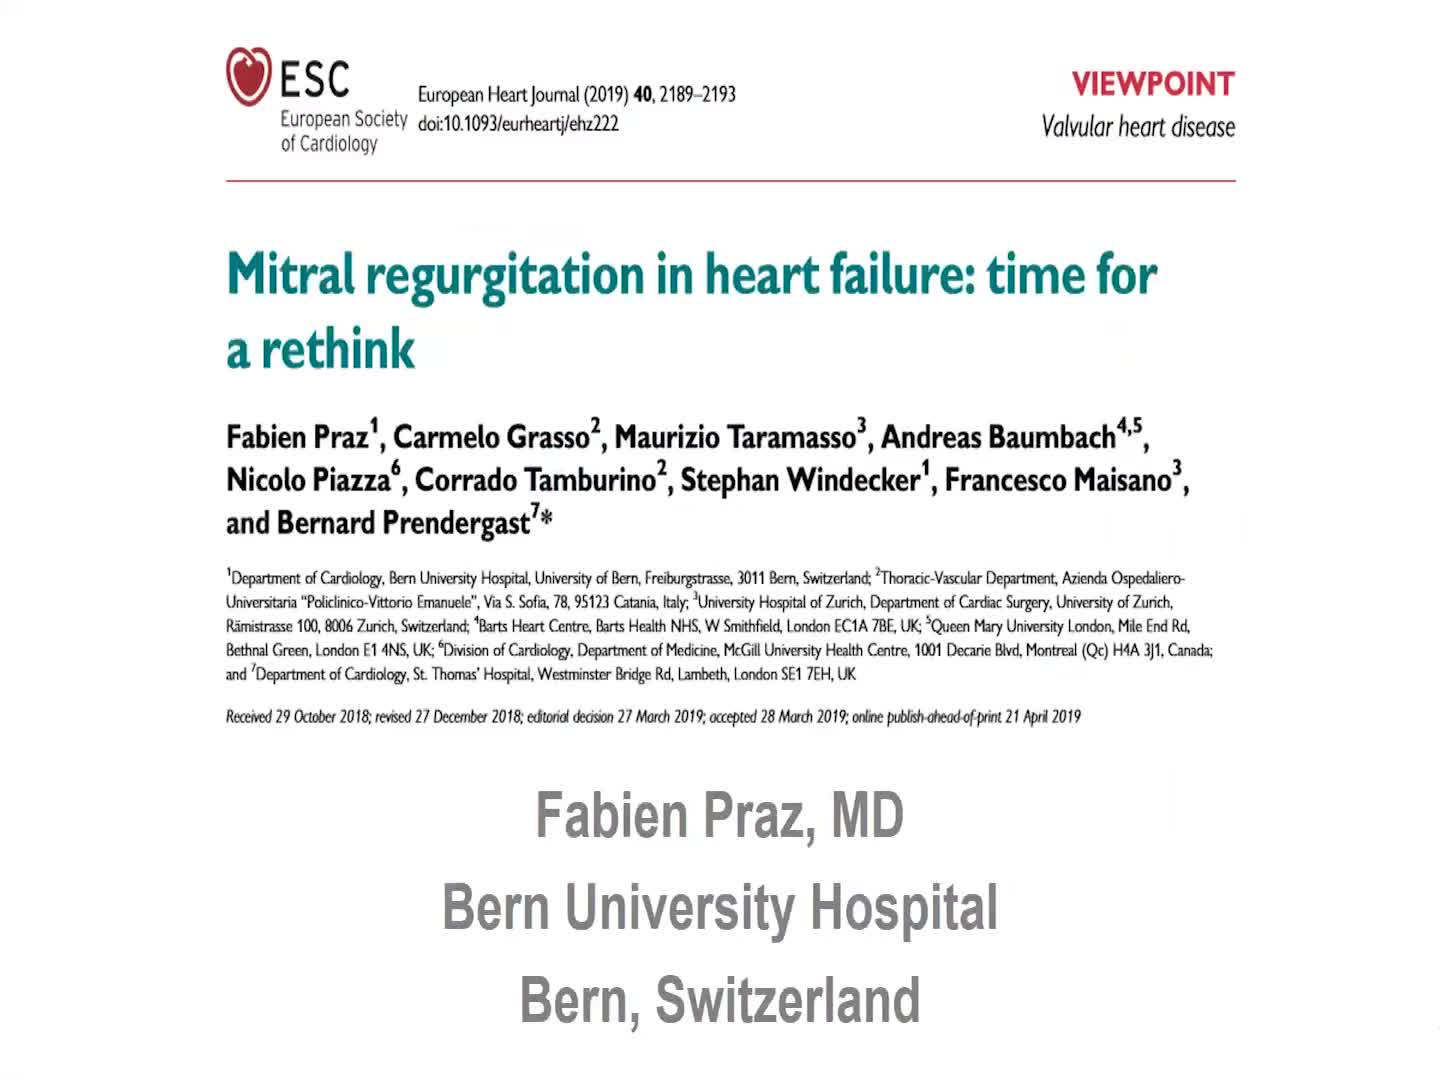 Mitral regurgitation in heart failure: time for a rethink